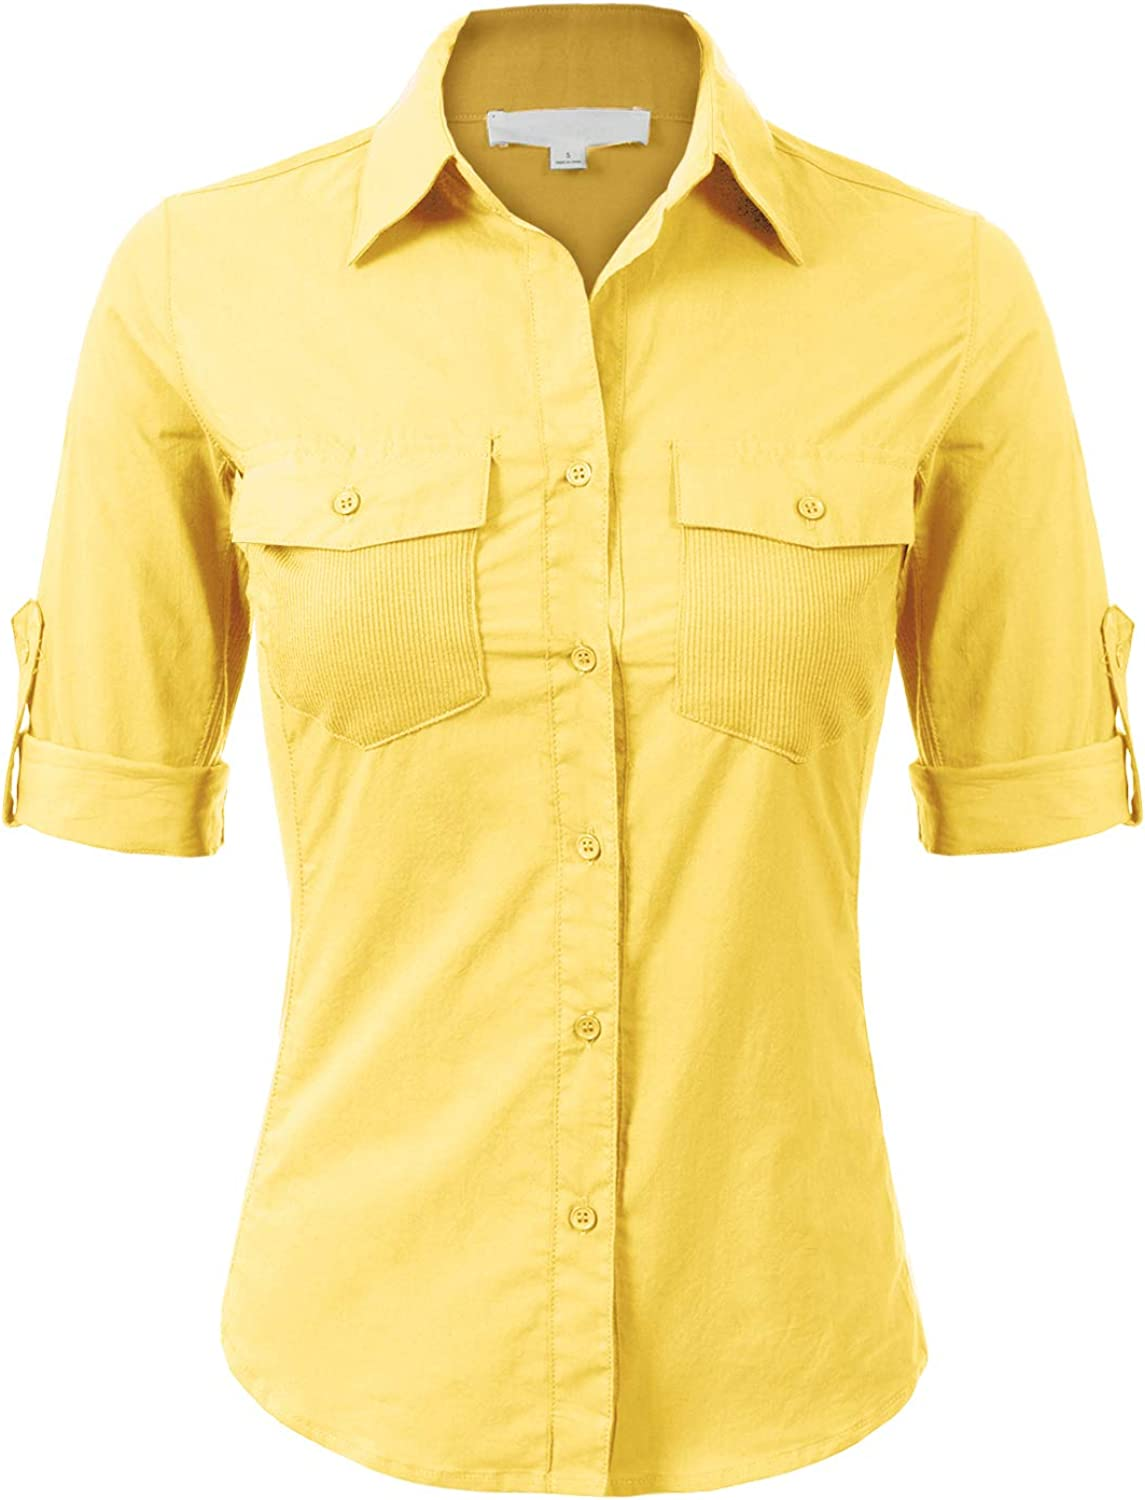 Design by Olivia Women's Solid Cotton Voile Ribbed Pocket and Side Button-Down Shirt: Clothing